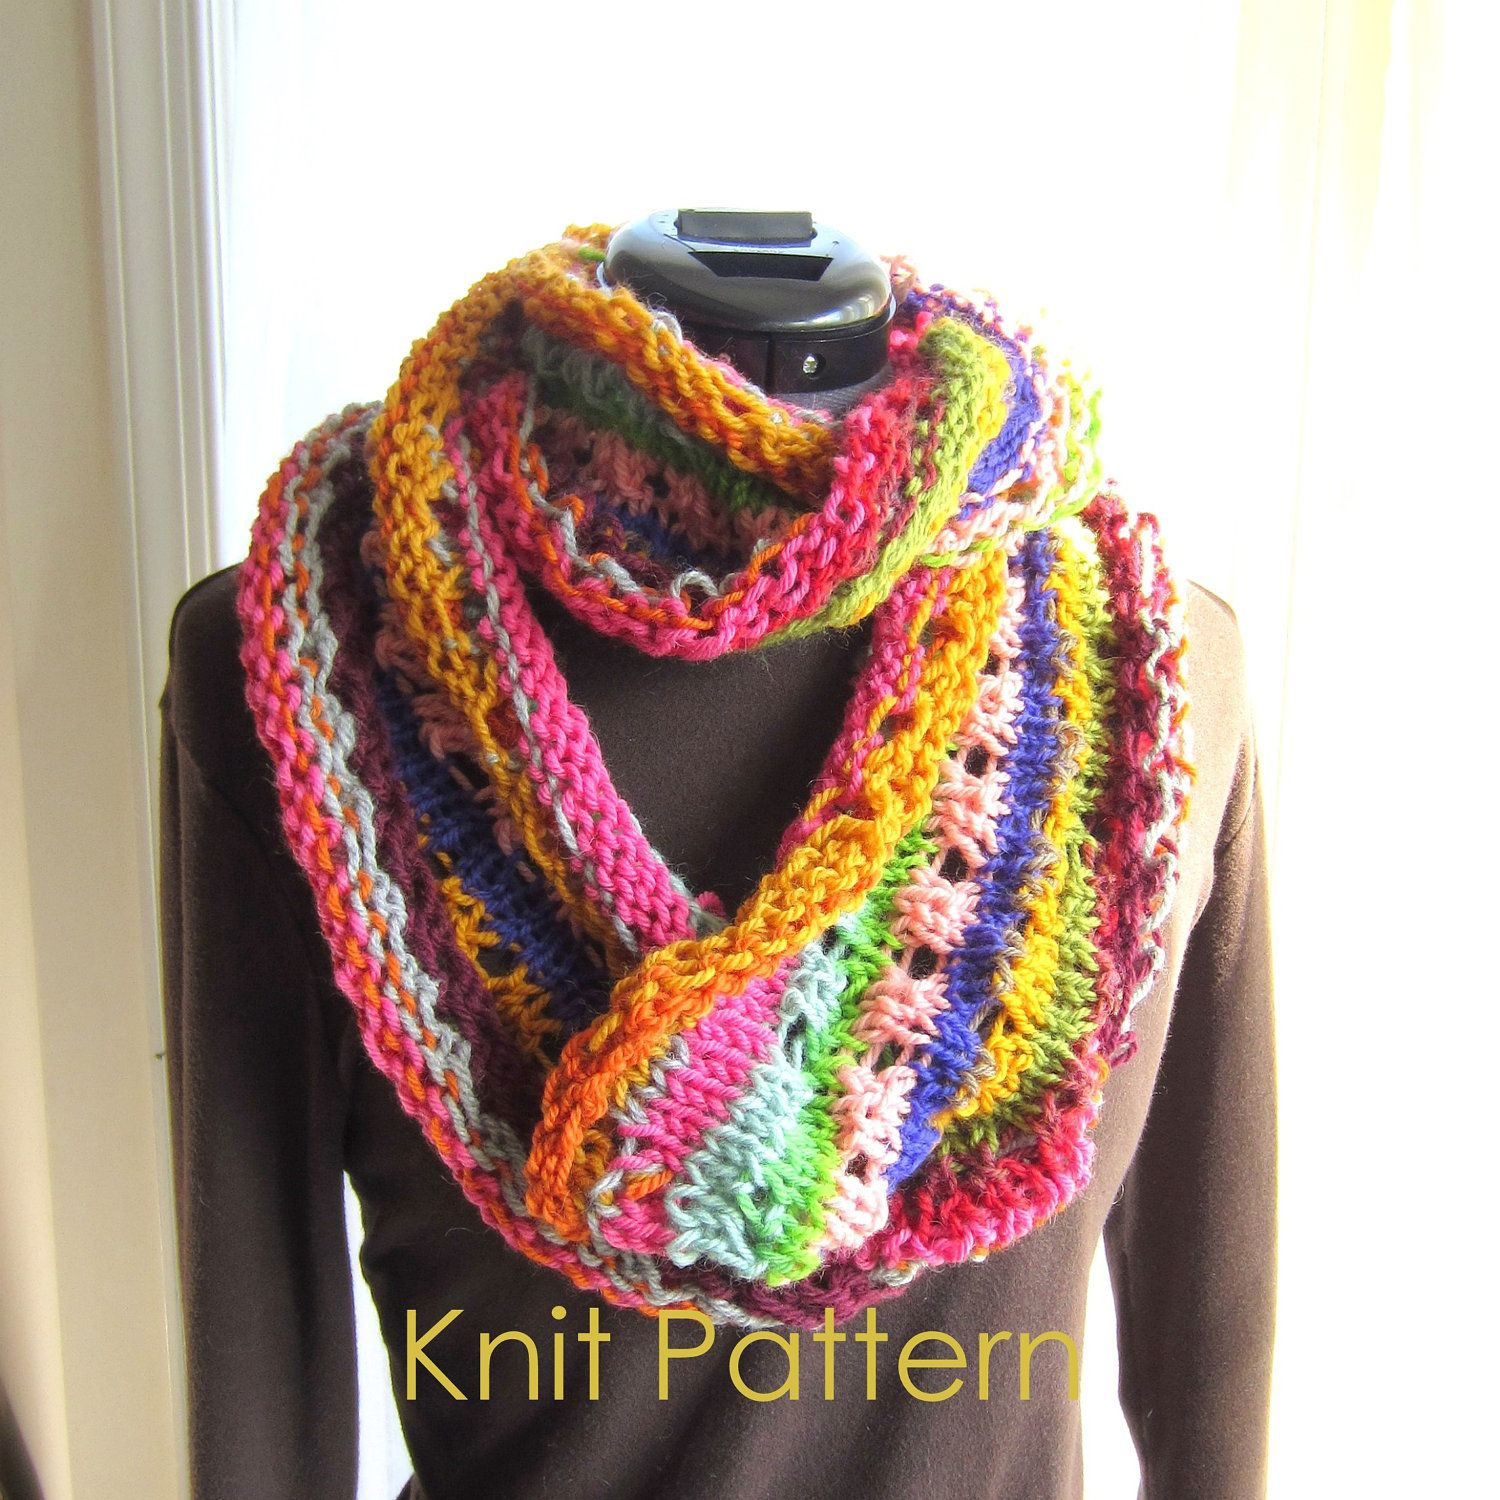 Knit scarf pattern pdf rainbow infinity scarf knitting by graceg2 knit scarf pattern pdf rainbow infinity scarf knitting by graceg2 600 bankloansurffo Image collections